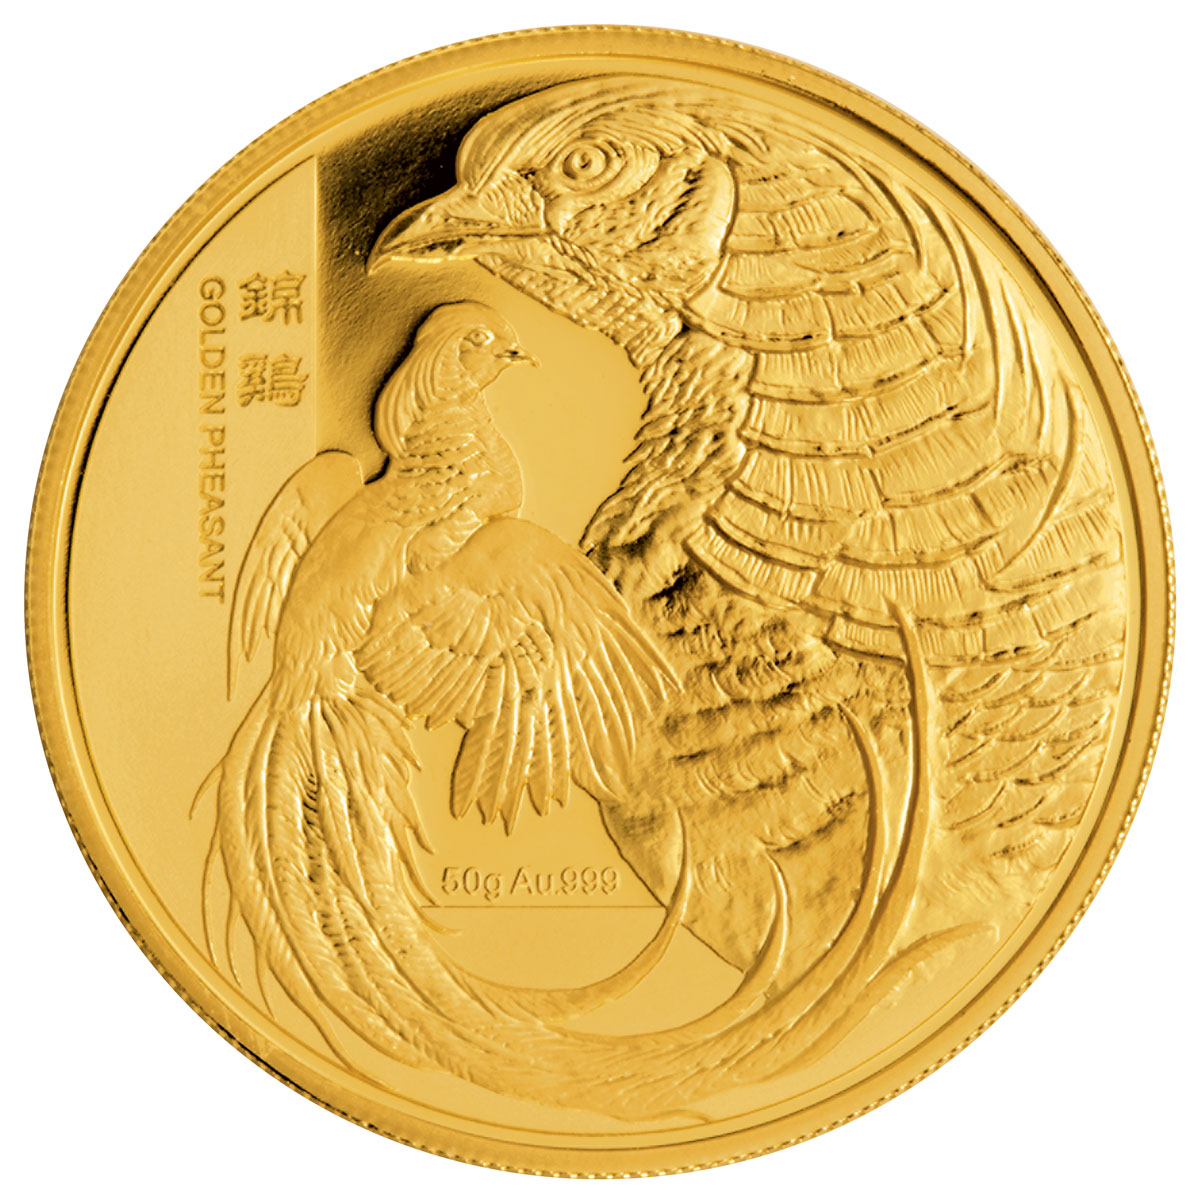 2017 China Golden Pheasant - 50 g Gold Proof - Scarce and Unique Coin Division